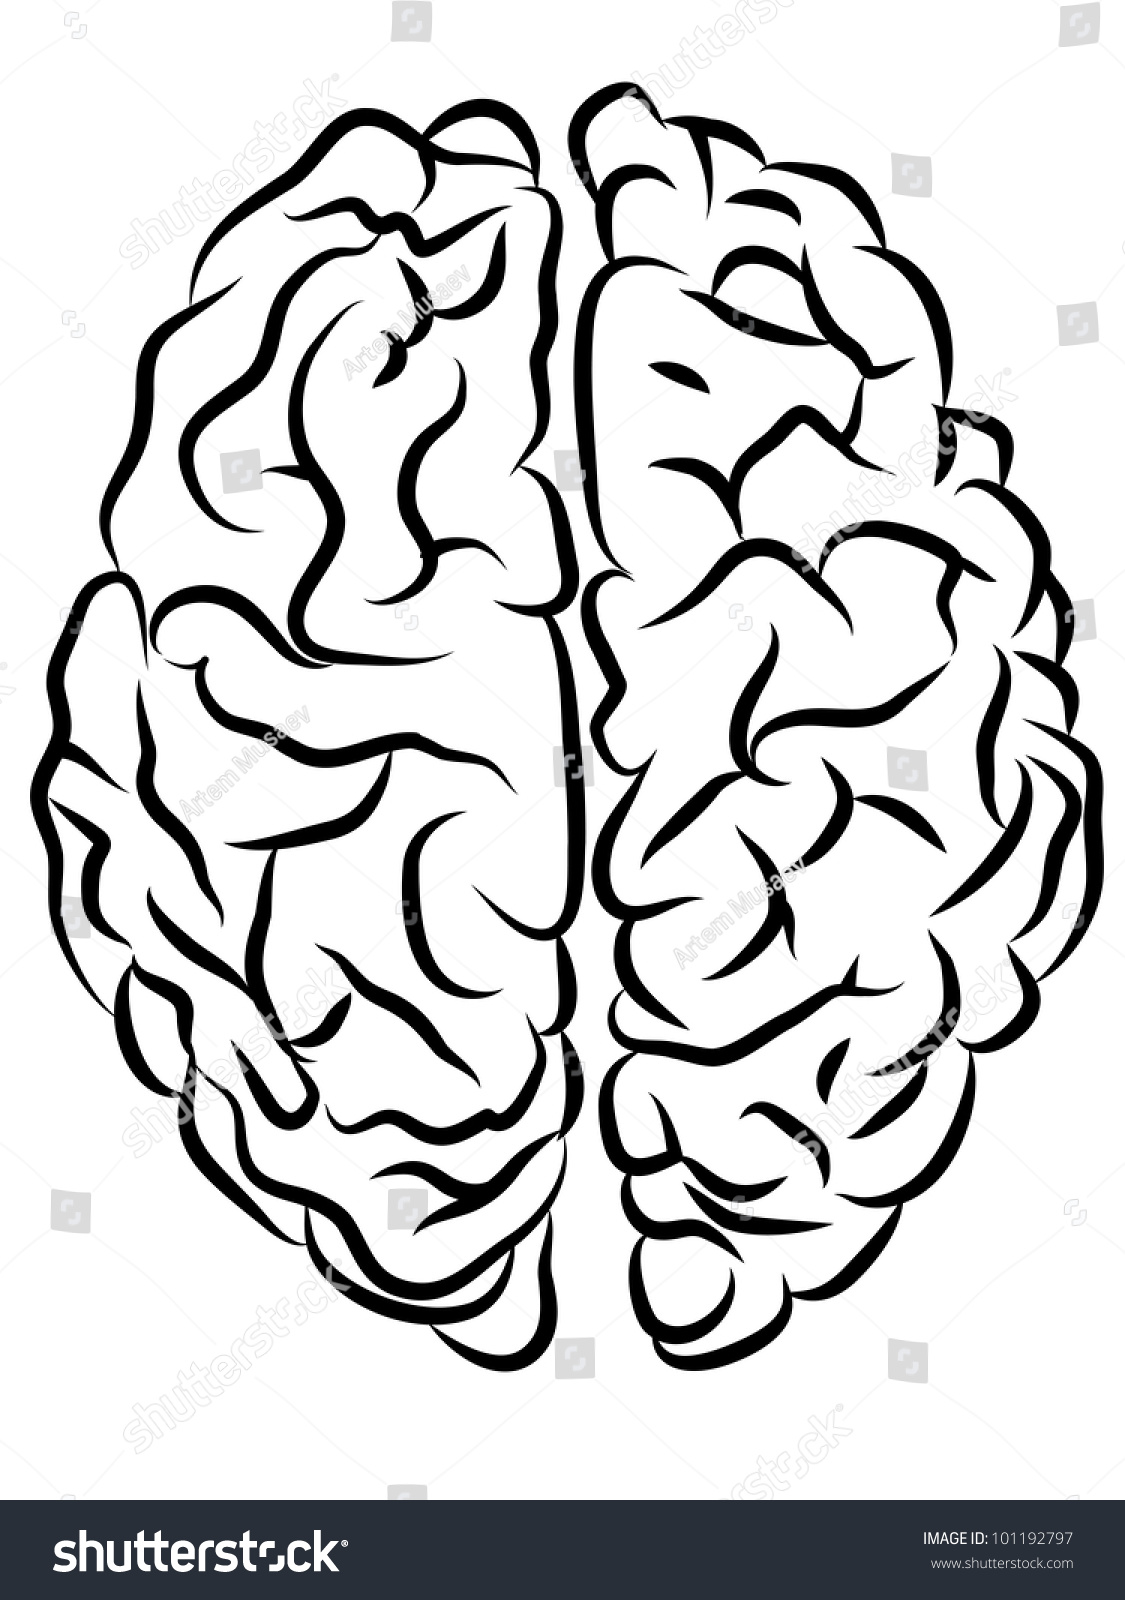 Back > Gallery For > Brain Outline Clipart Black And White